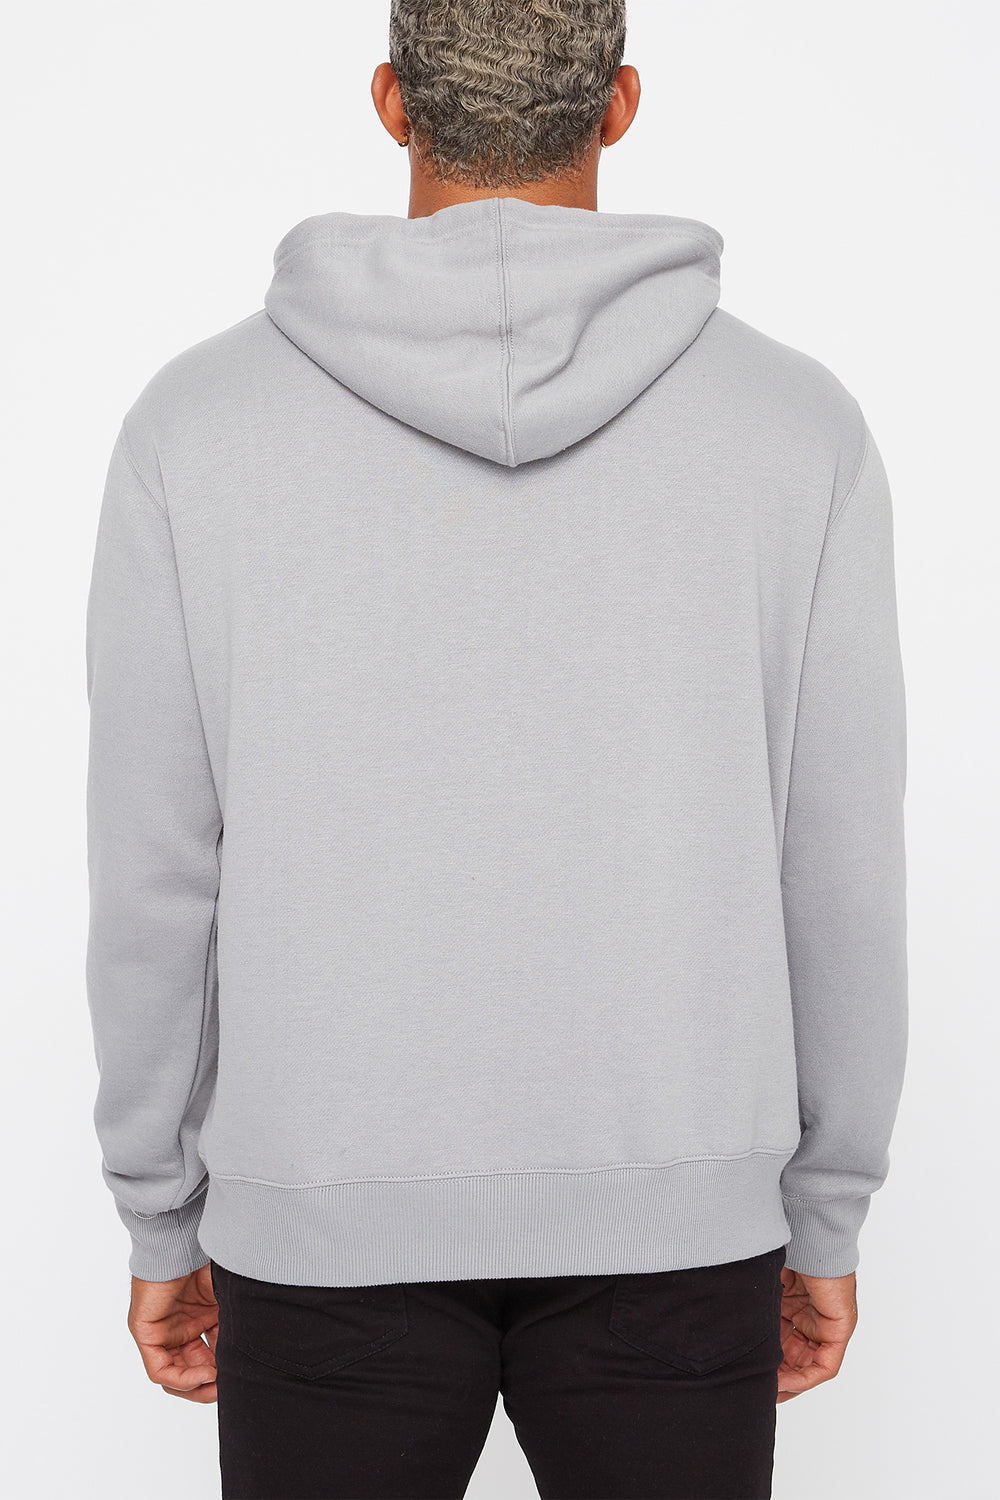 Moe's Tavern Mens Graphic Hoodie Light Grey